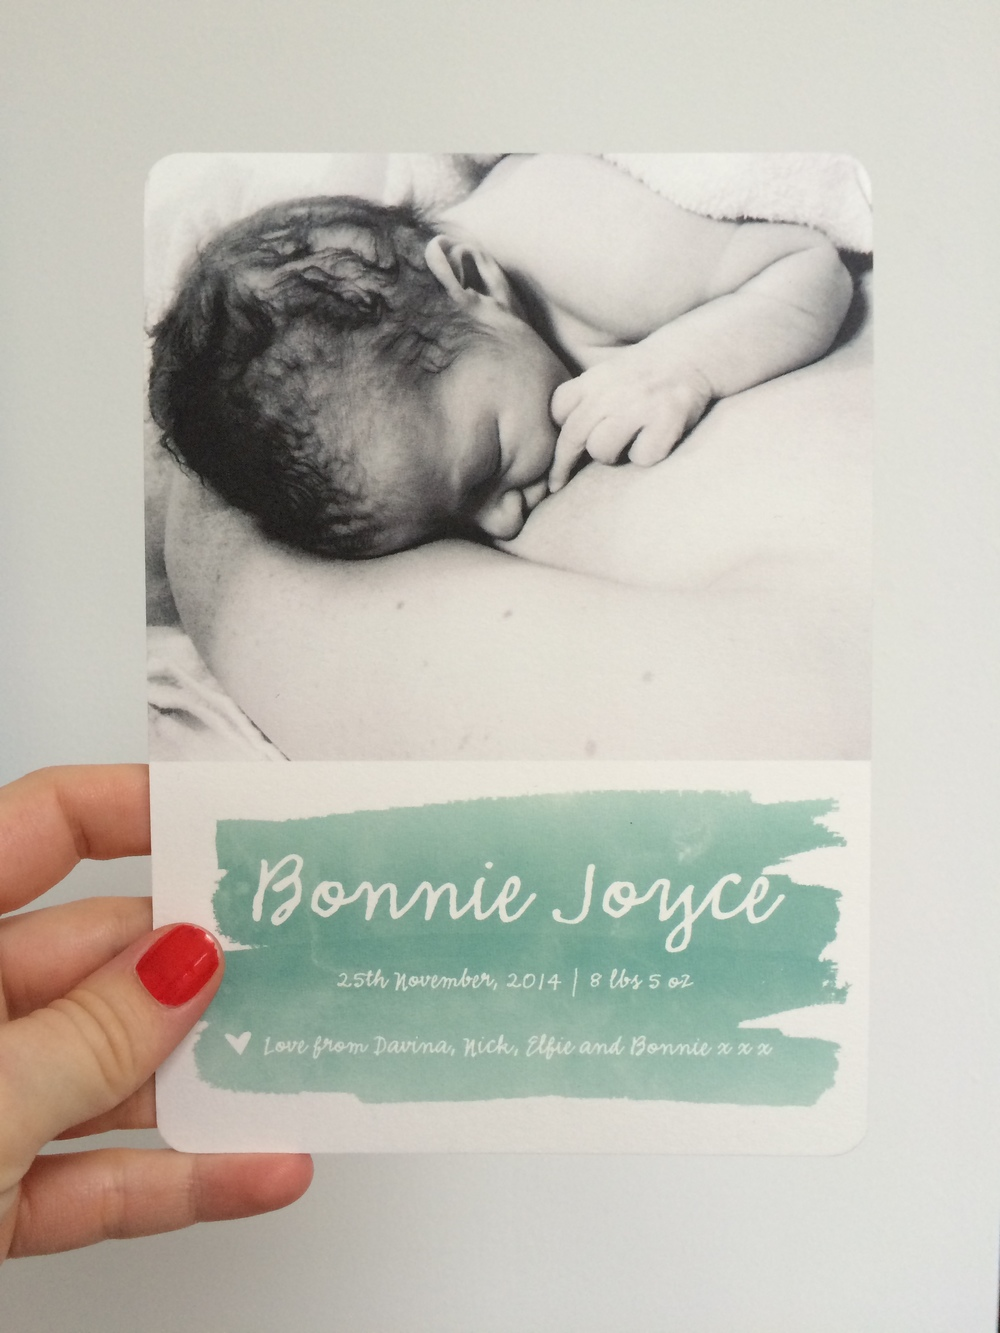 Bonnie's Birth Announcement printed and designed by Minted.com